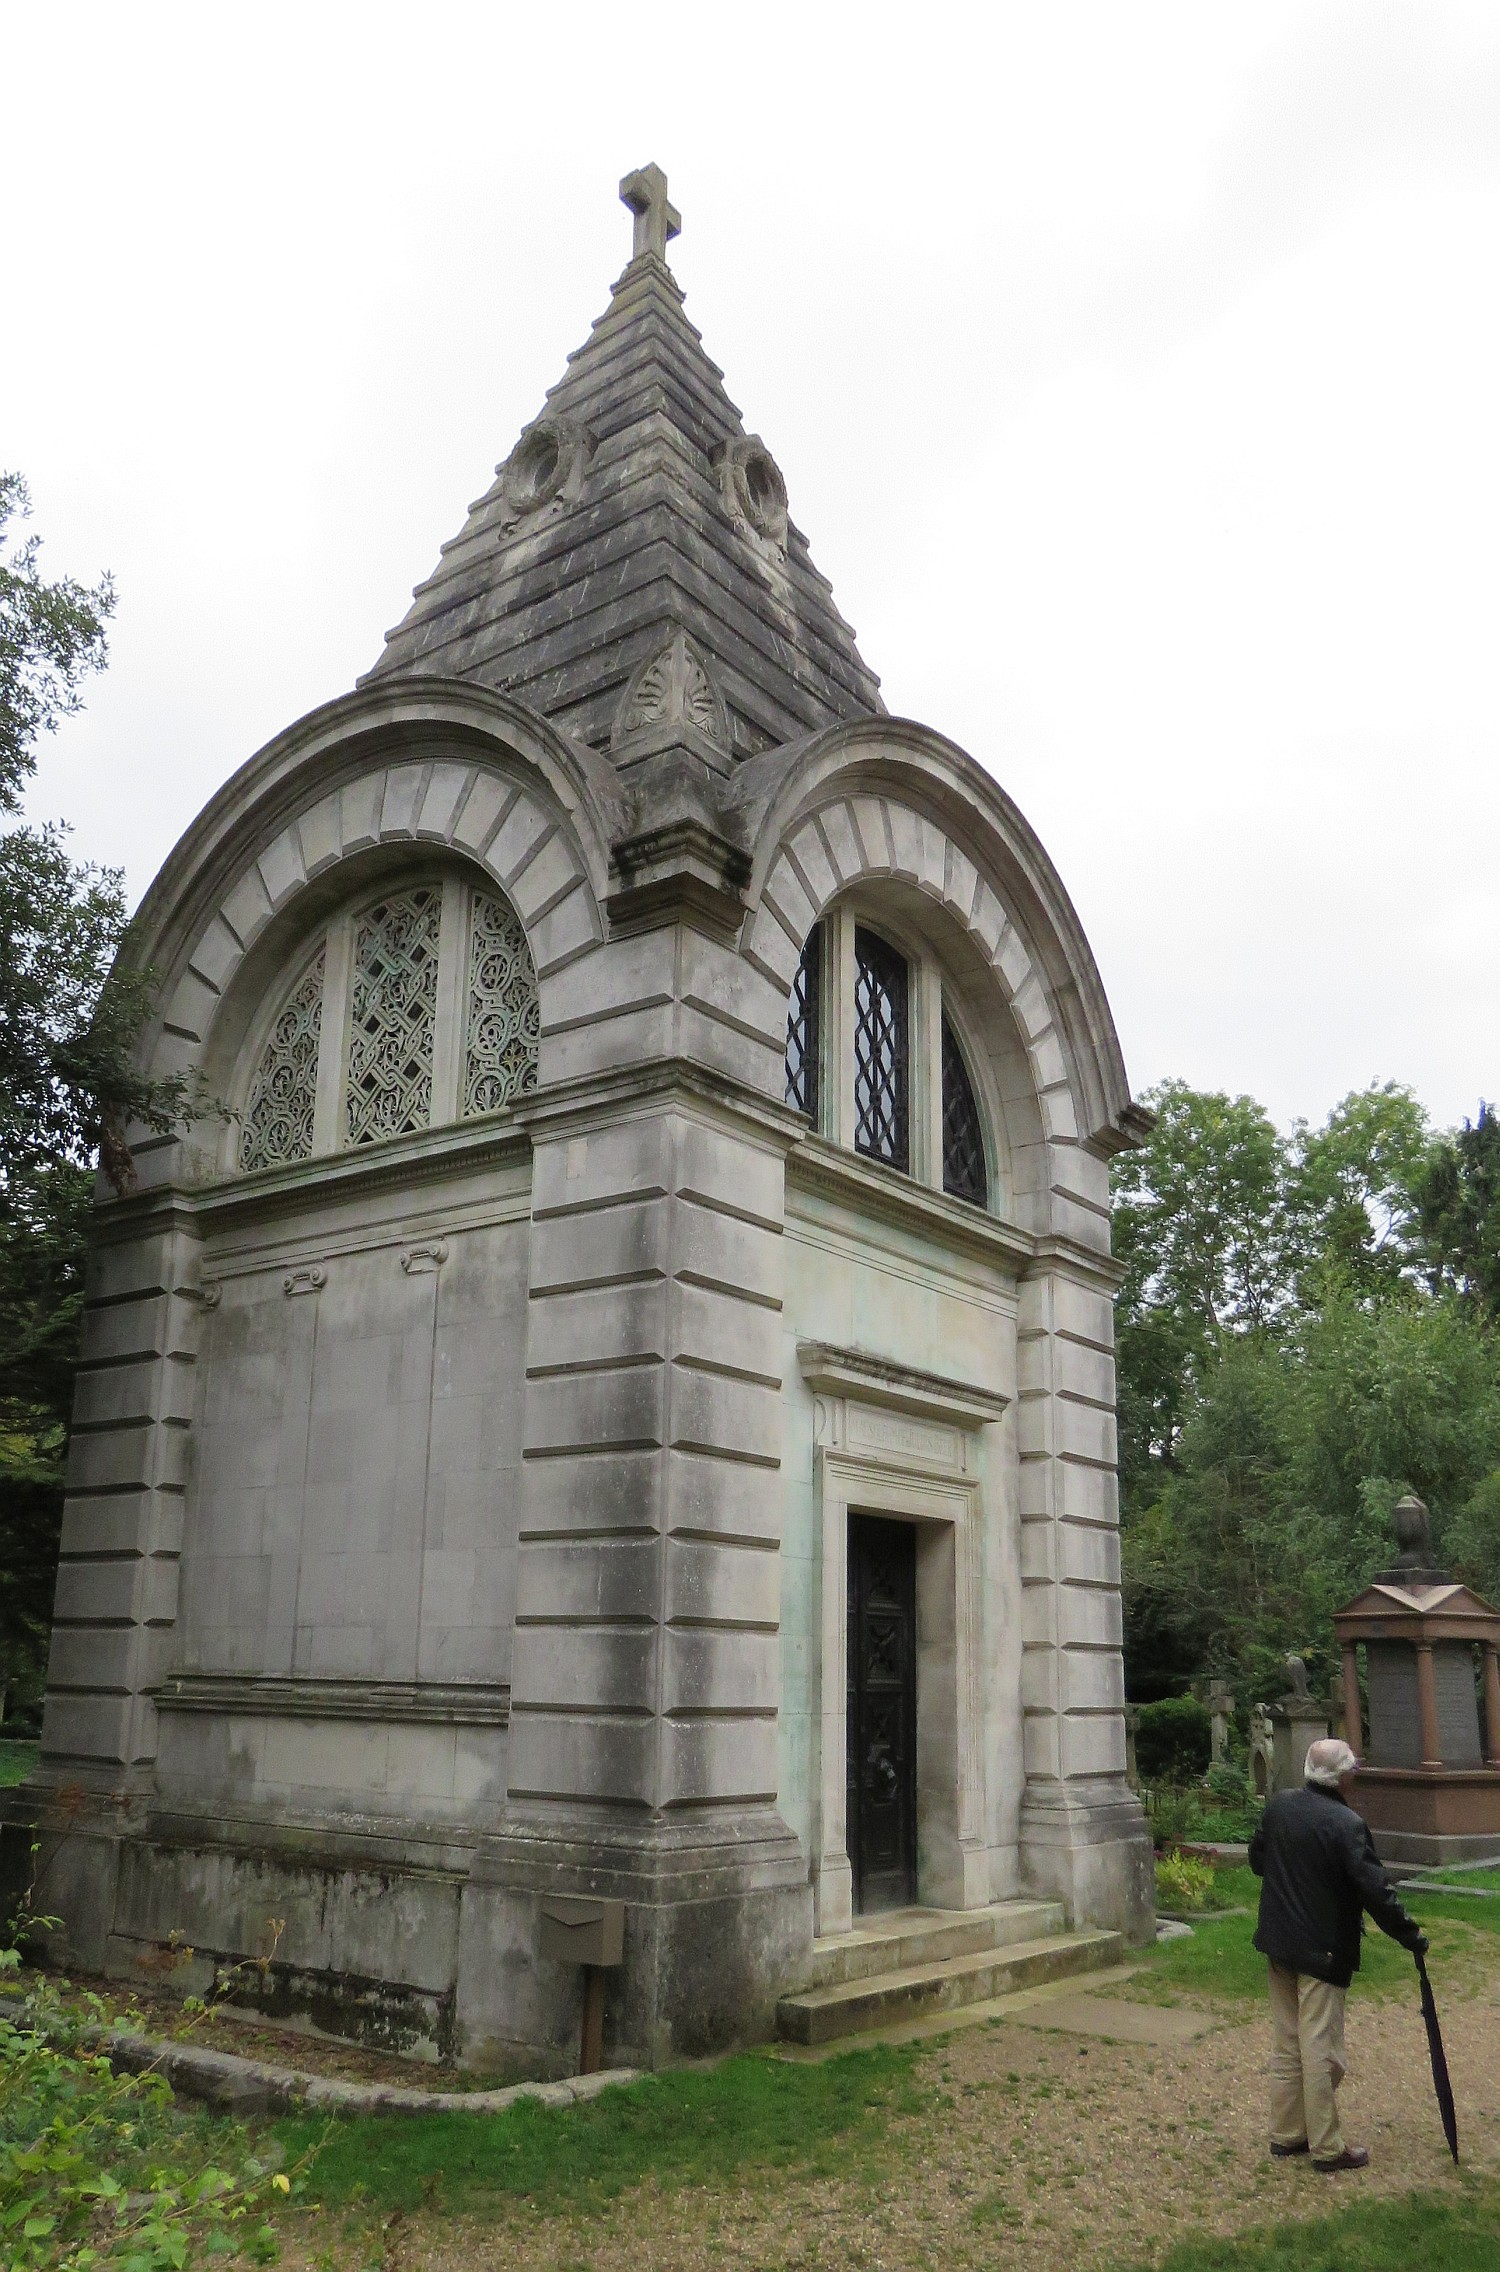 One of many individual crypts.  This one owned for a former Jewish family.  Only Christians allowed in the cemetery, with a special plot for reserved for those not Church of Christ.